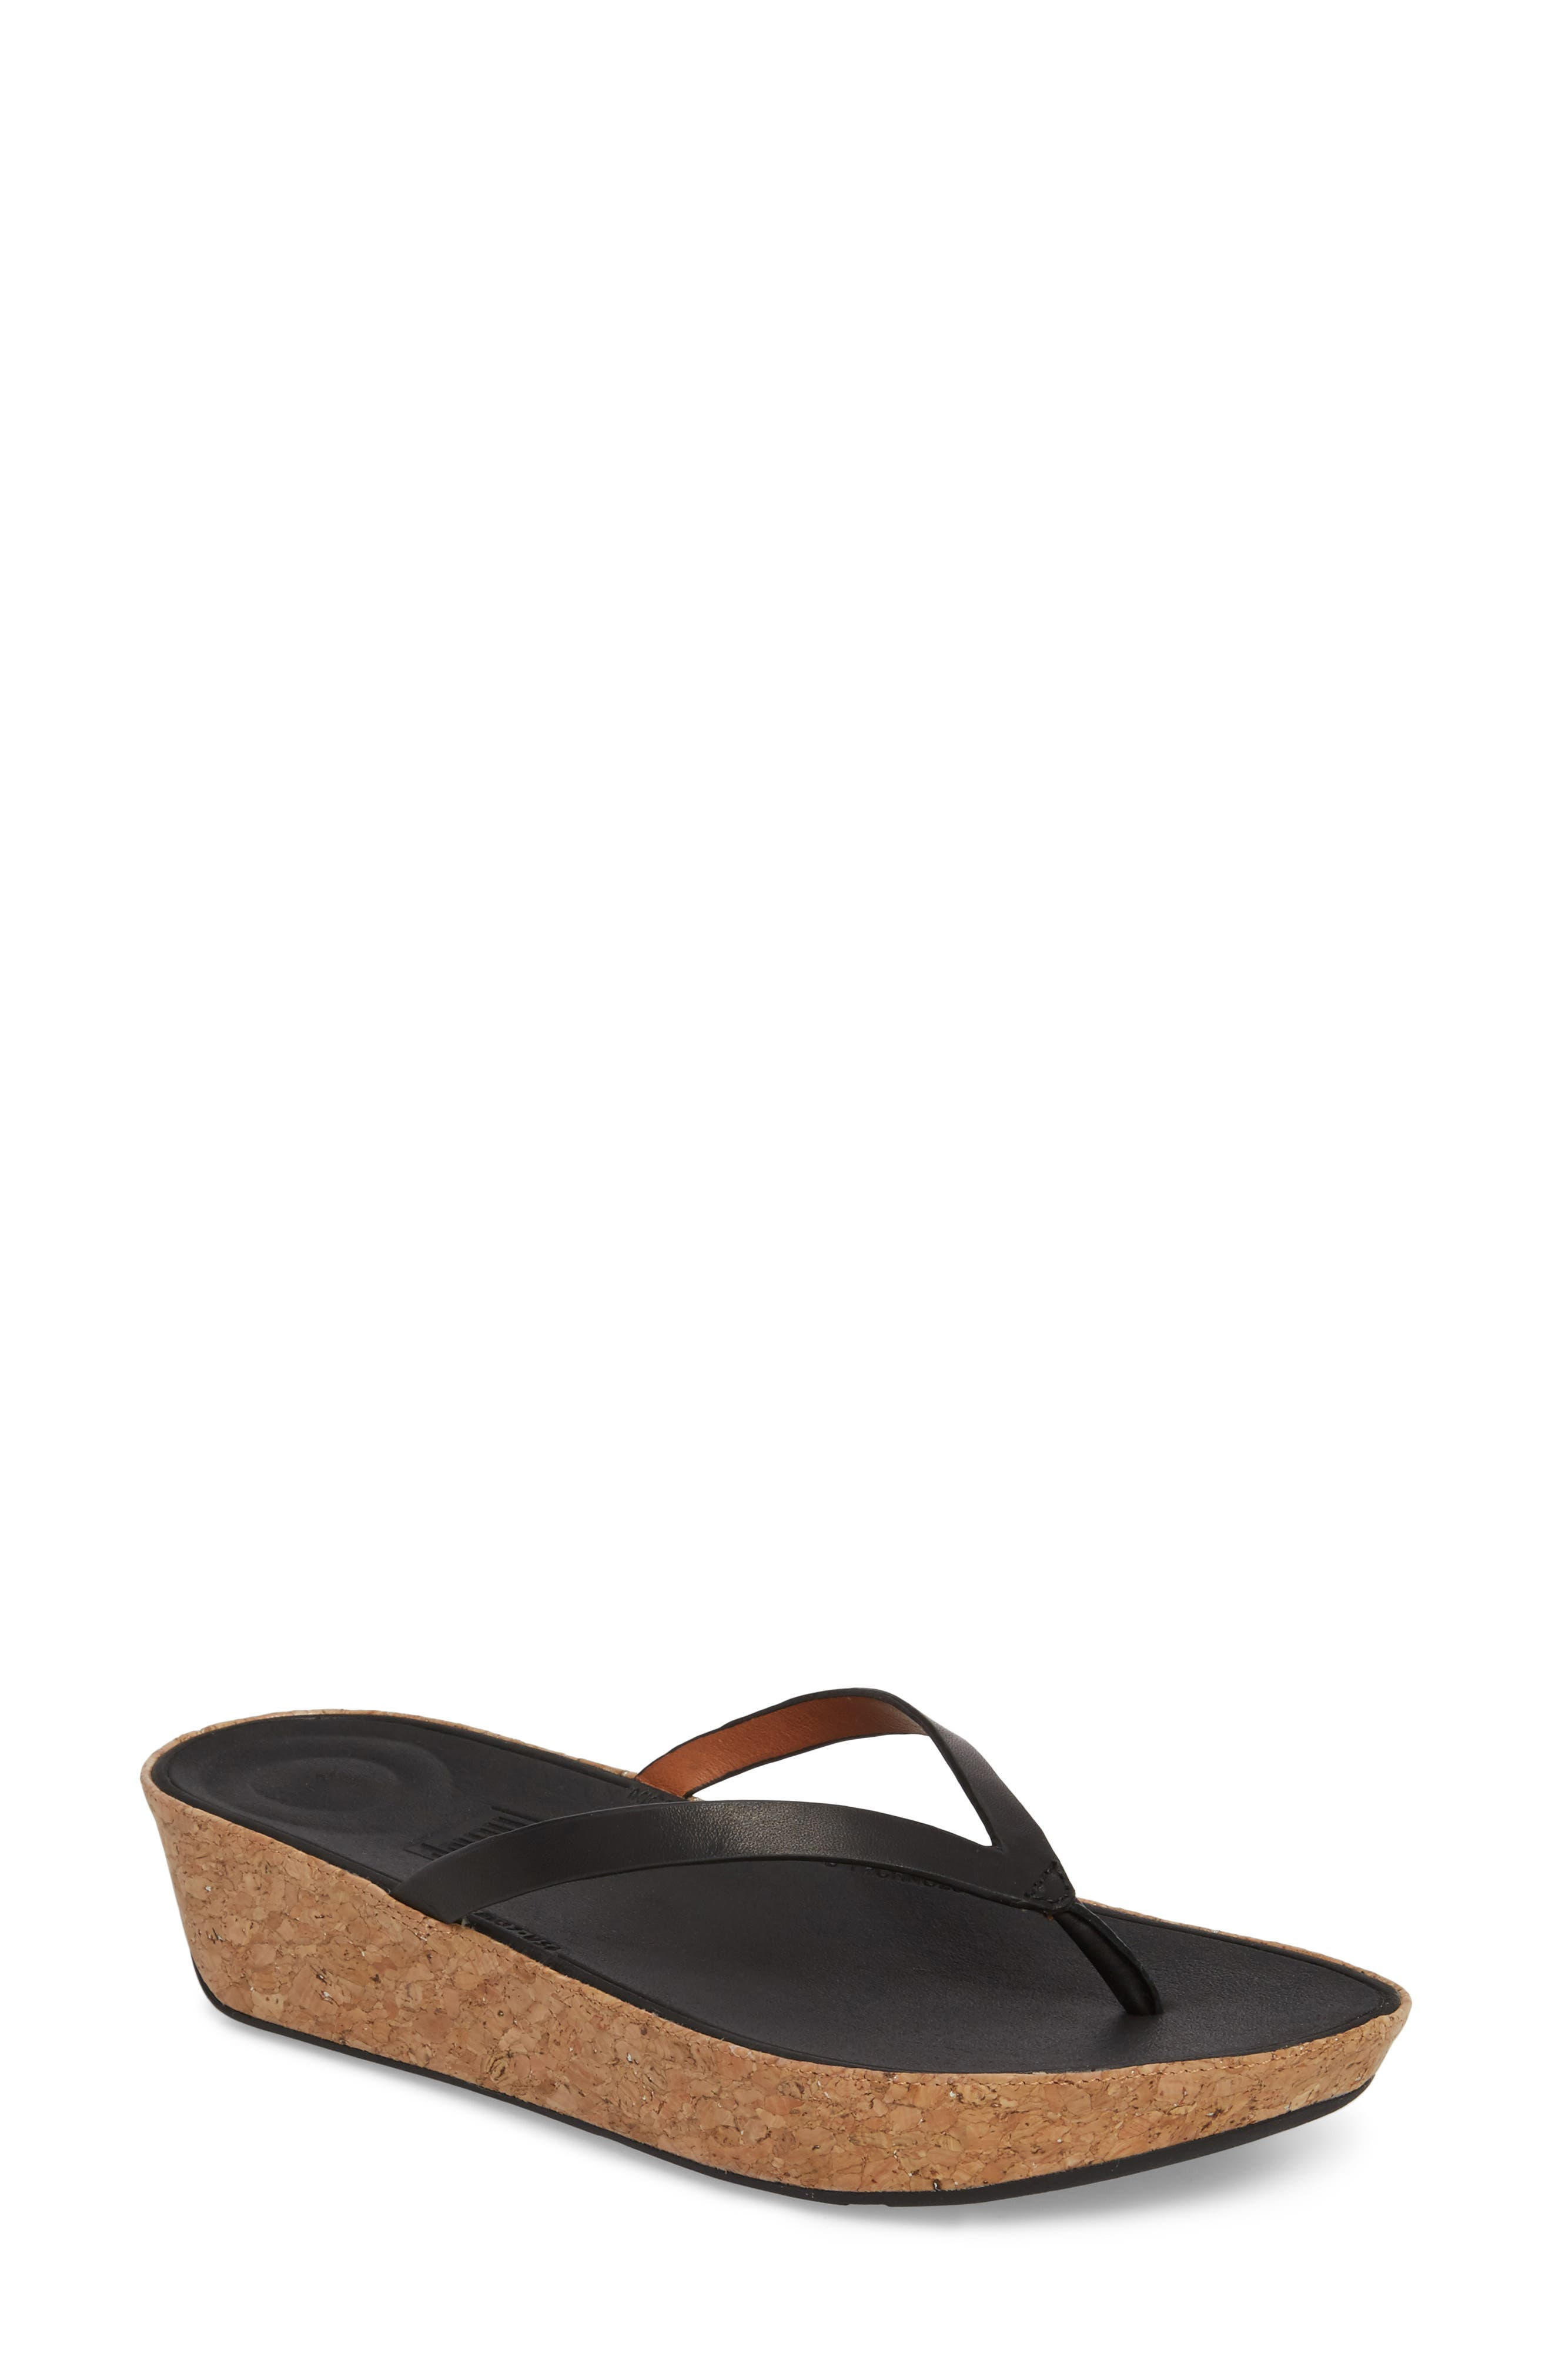 FITFLOP,                             Linny Wedge Flip Flop,                             Main thumbnail 1, color,                             001